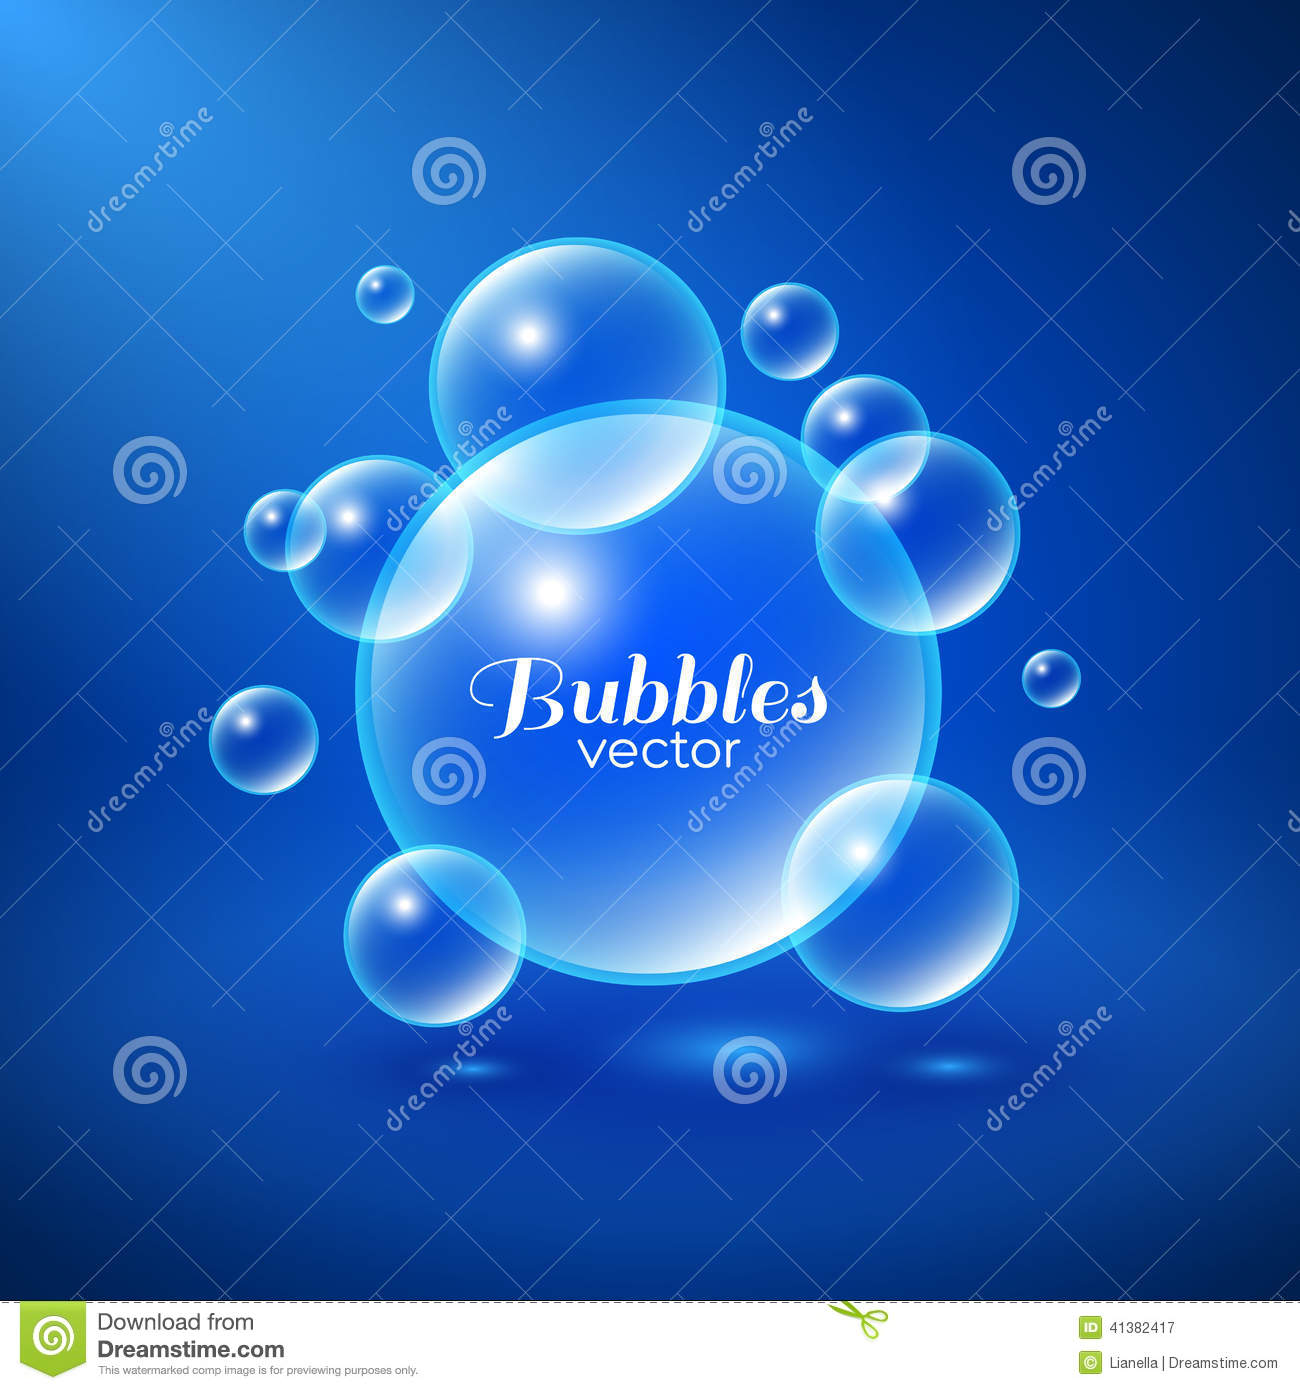 Air Bubbles Background Stock Vector - Image: 41382417